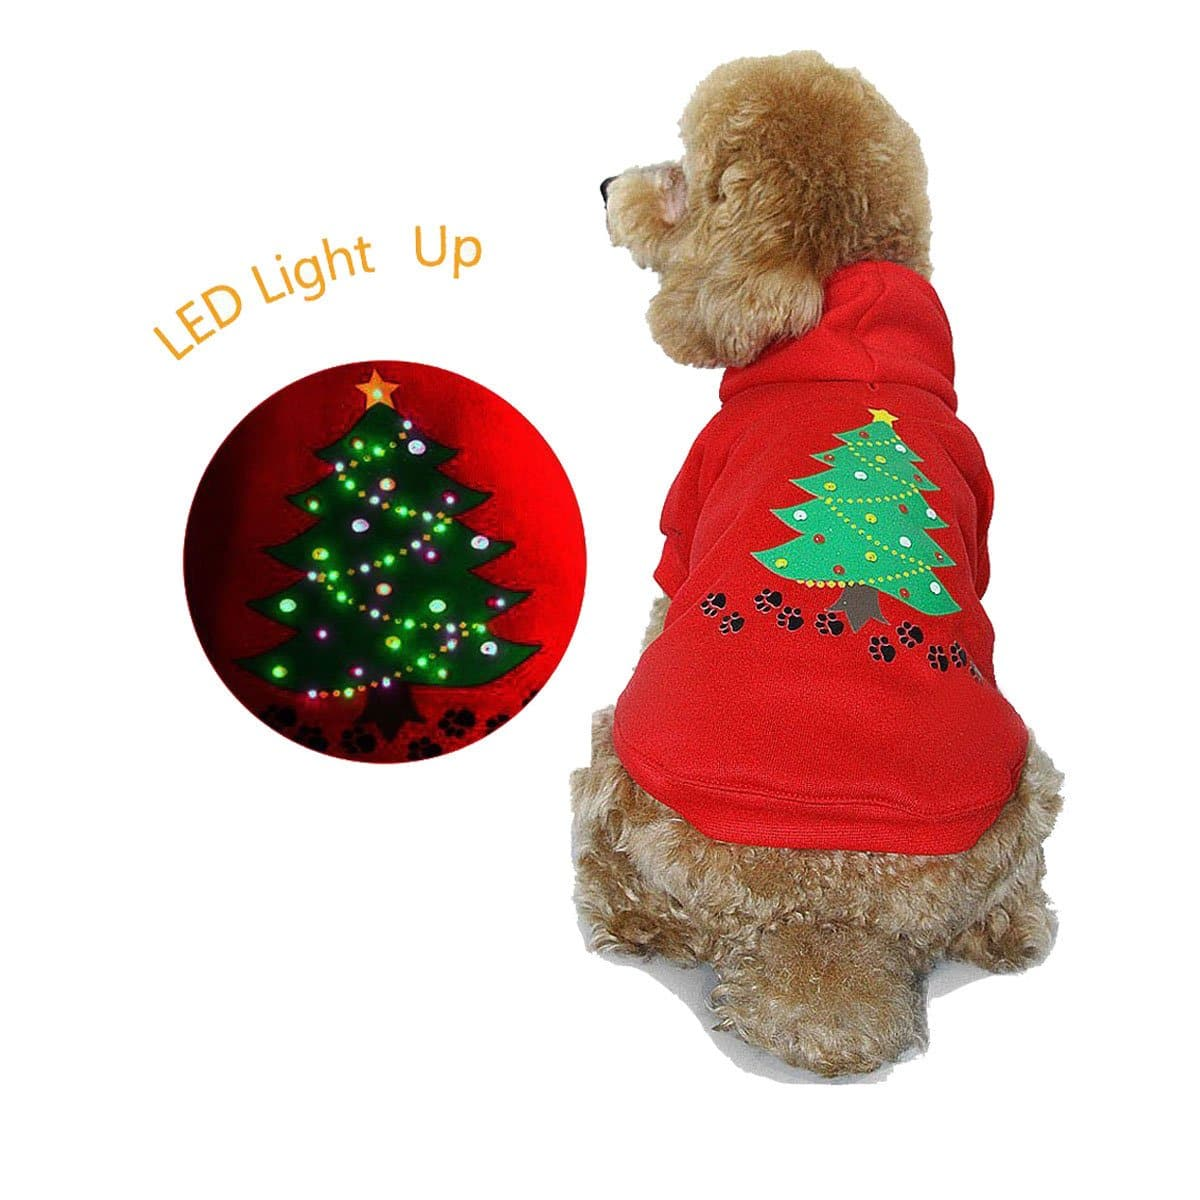 Light Up Christmas Tree Dog Sweater Amazon 799ac Slickdealsnet